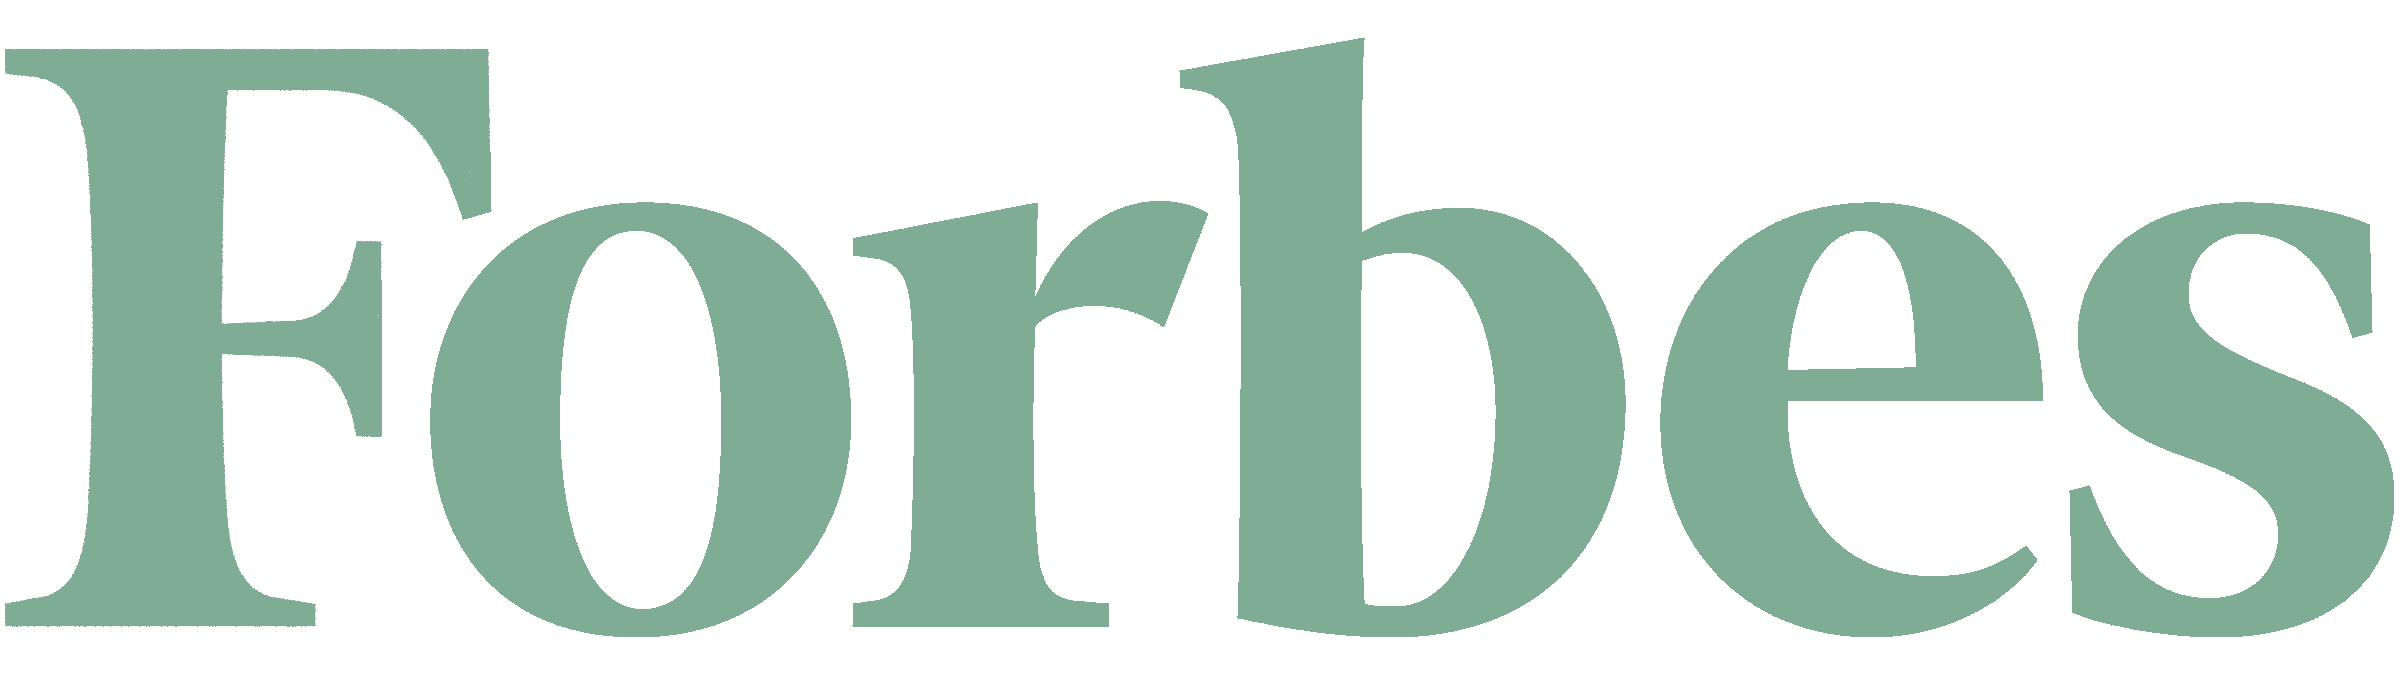 forbes logo - financial planning services firm farmington ct